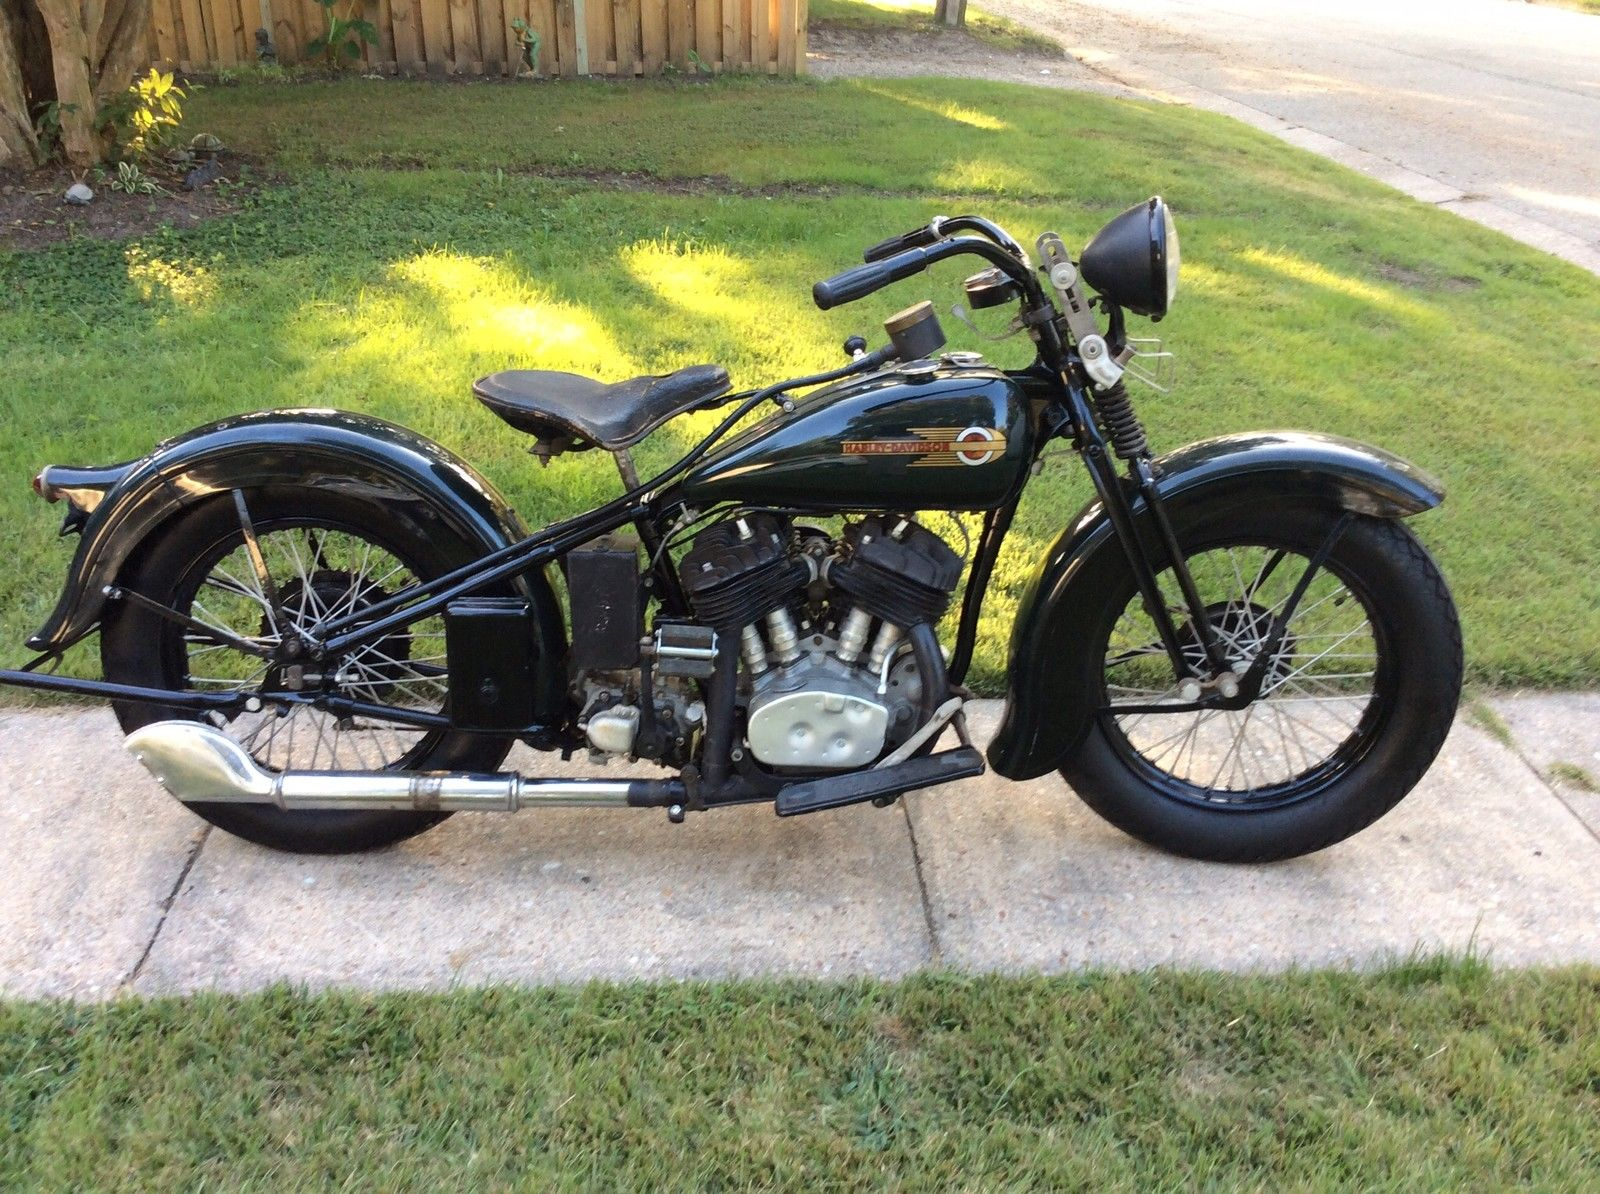 Vlh Harley Davidson For Sale